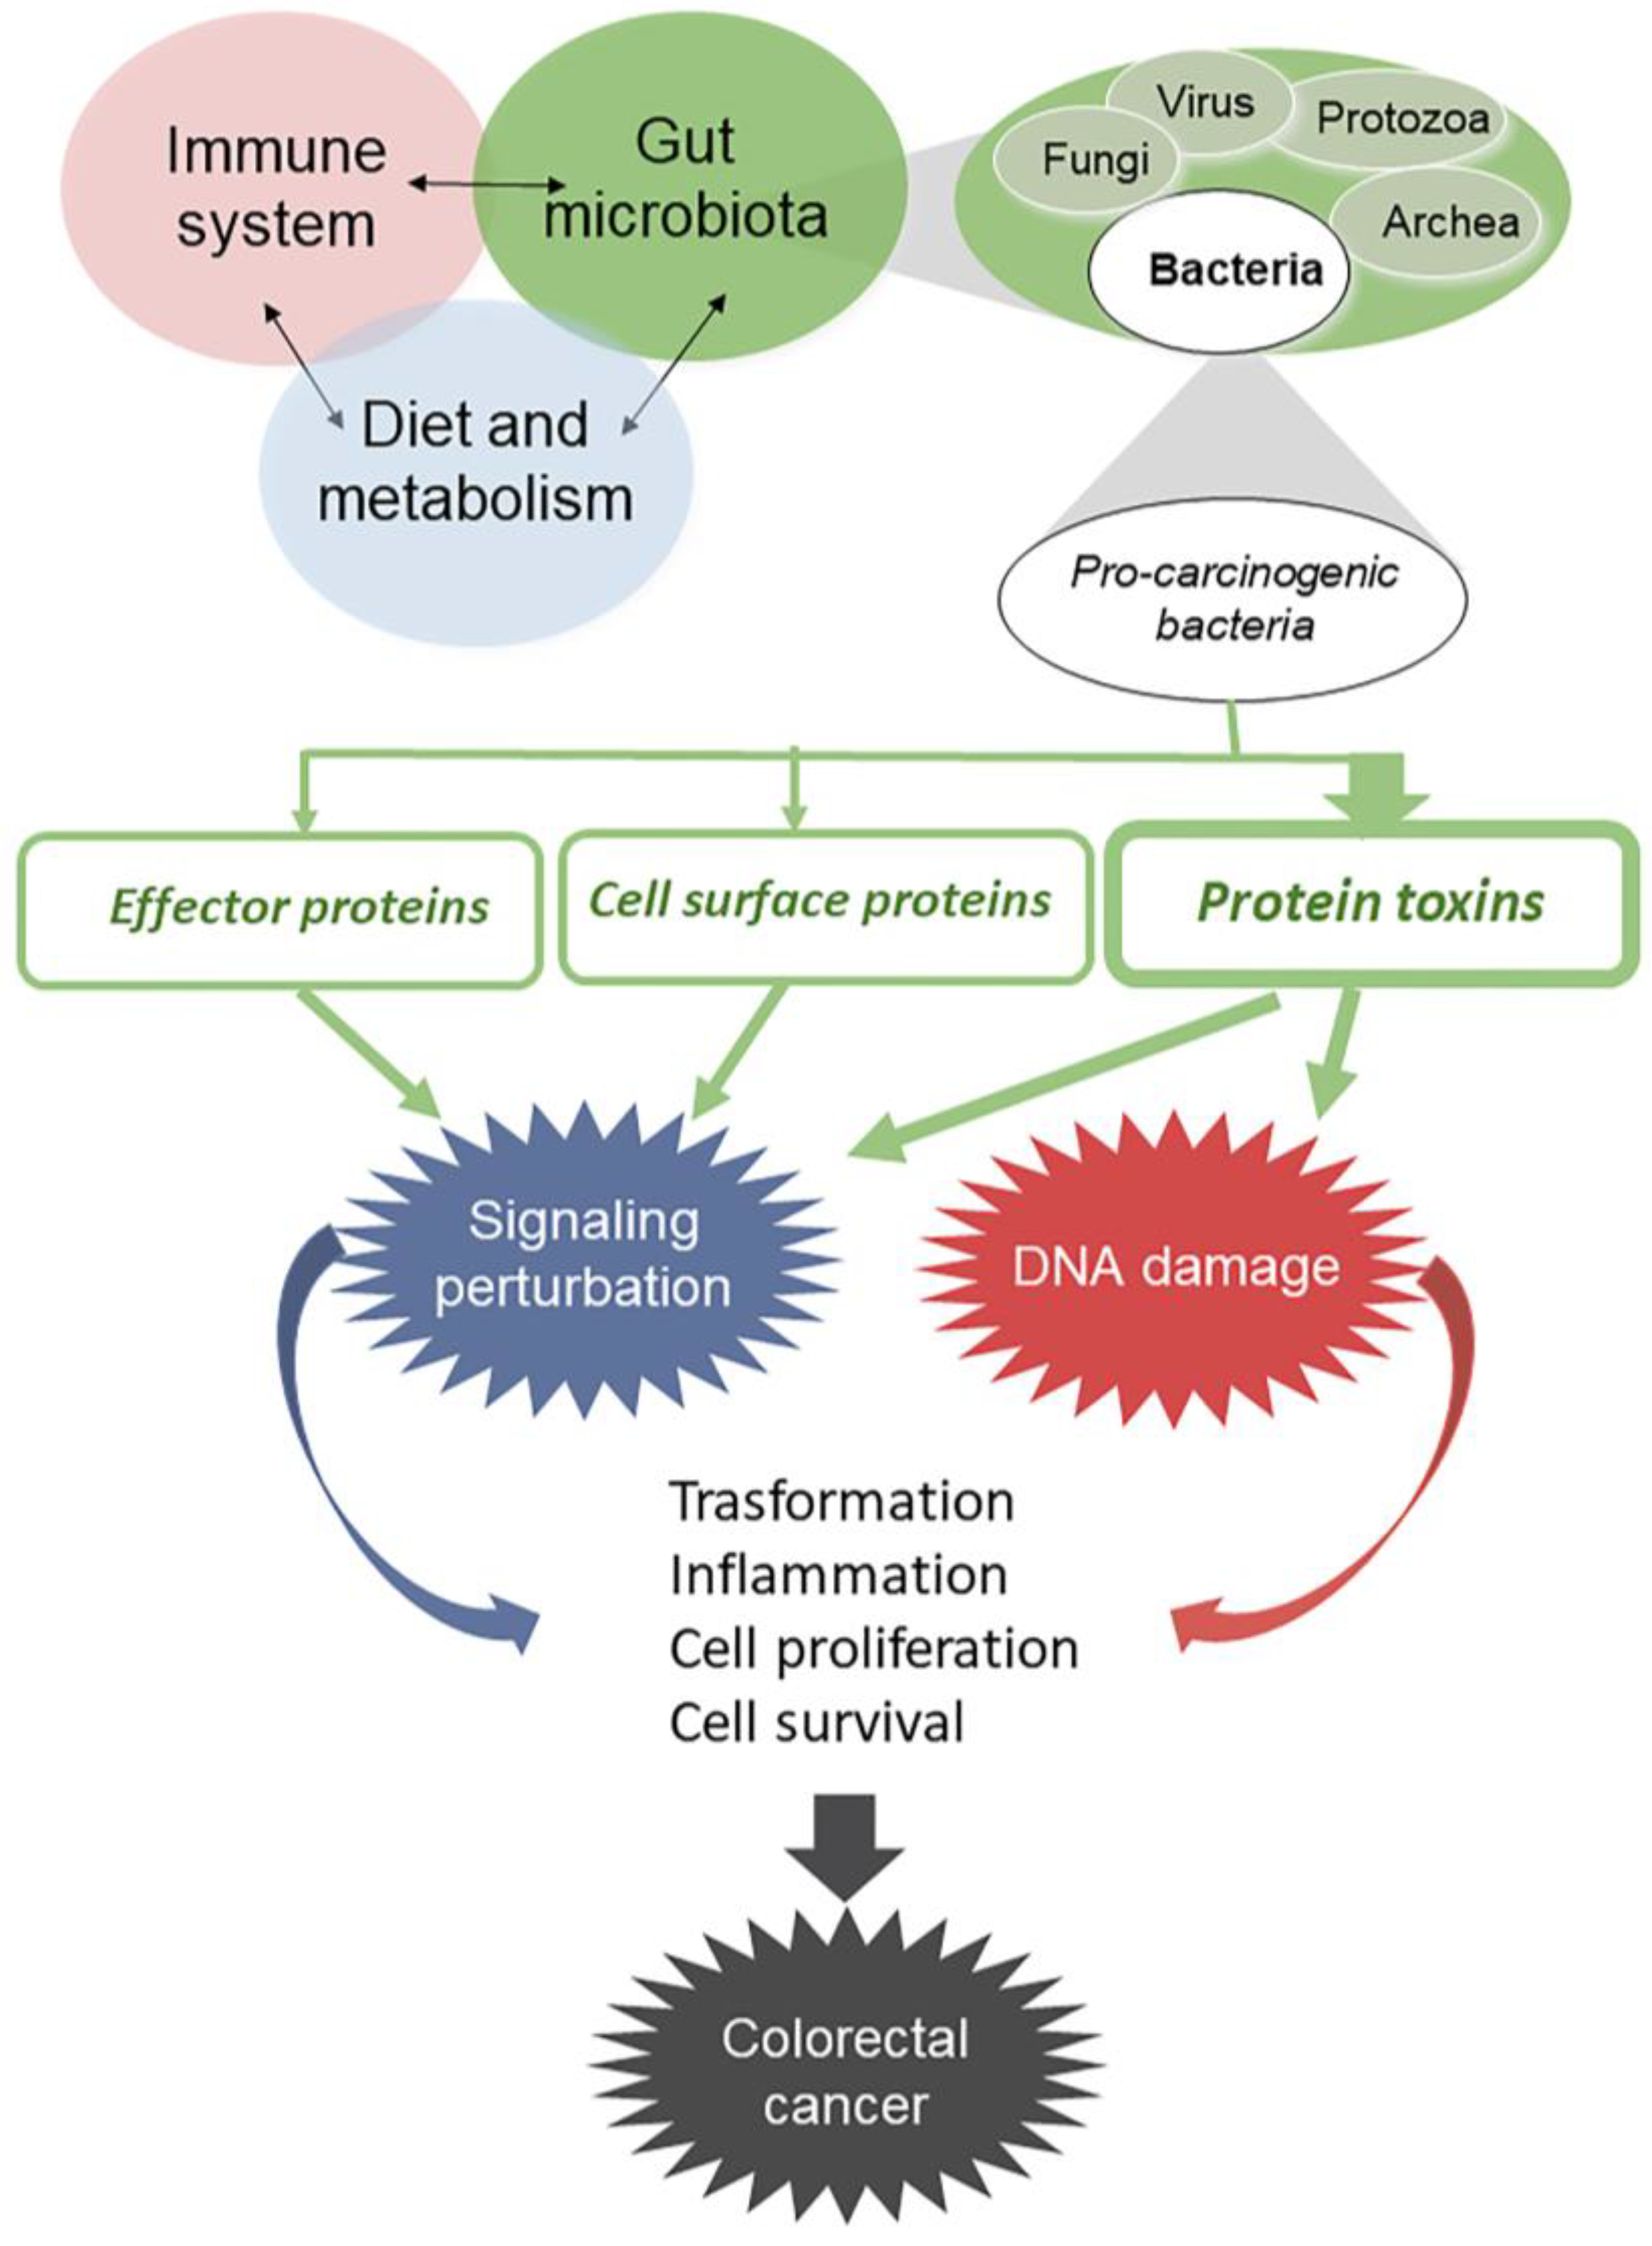 Ijms Free Full Text Gut Microbiota And Colon Cancer A Role For Bacterial Protein Toxins Html